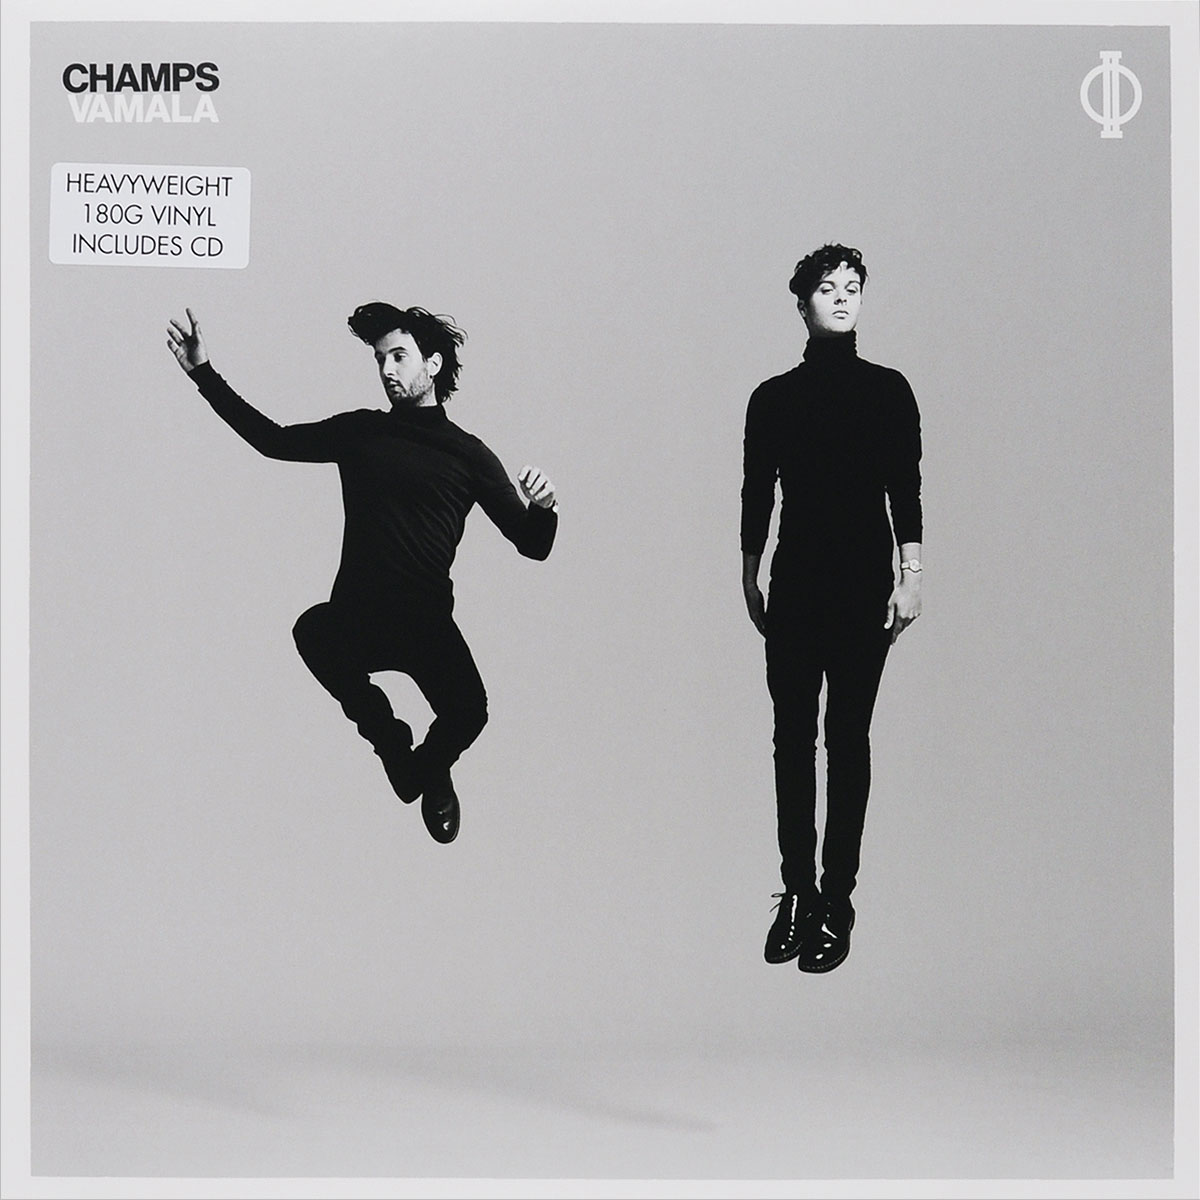 The Champs Champs. Vamala (LP + CD) кровать из массива дерева furniture in the champs elysees